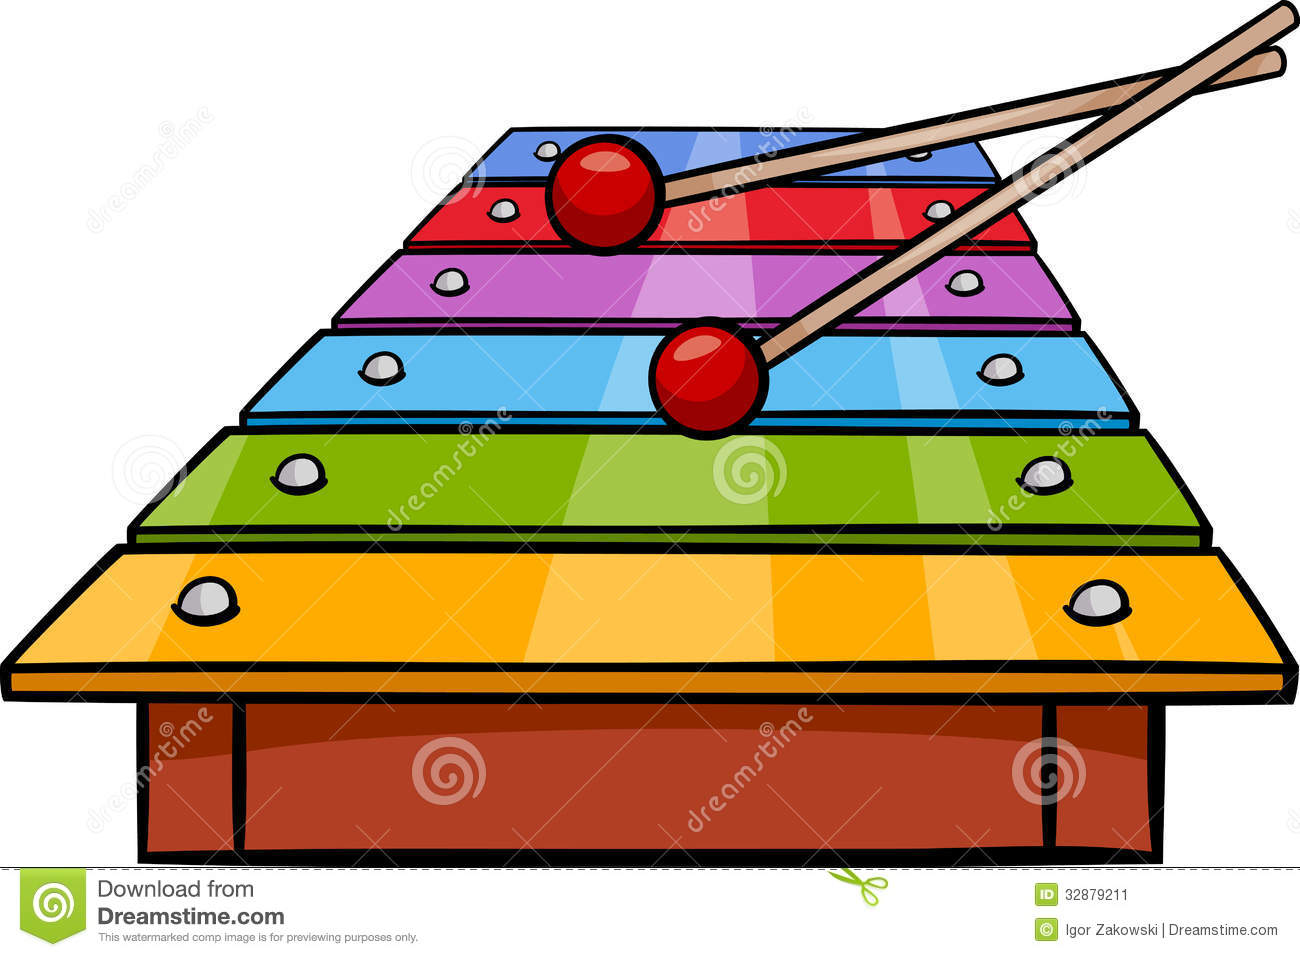 Xylophone Clip Art Cartoon Illustration Stock Image   Image  32879211